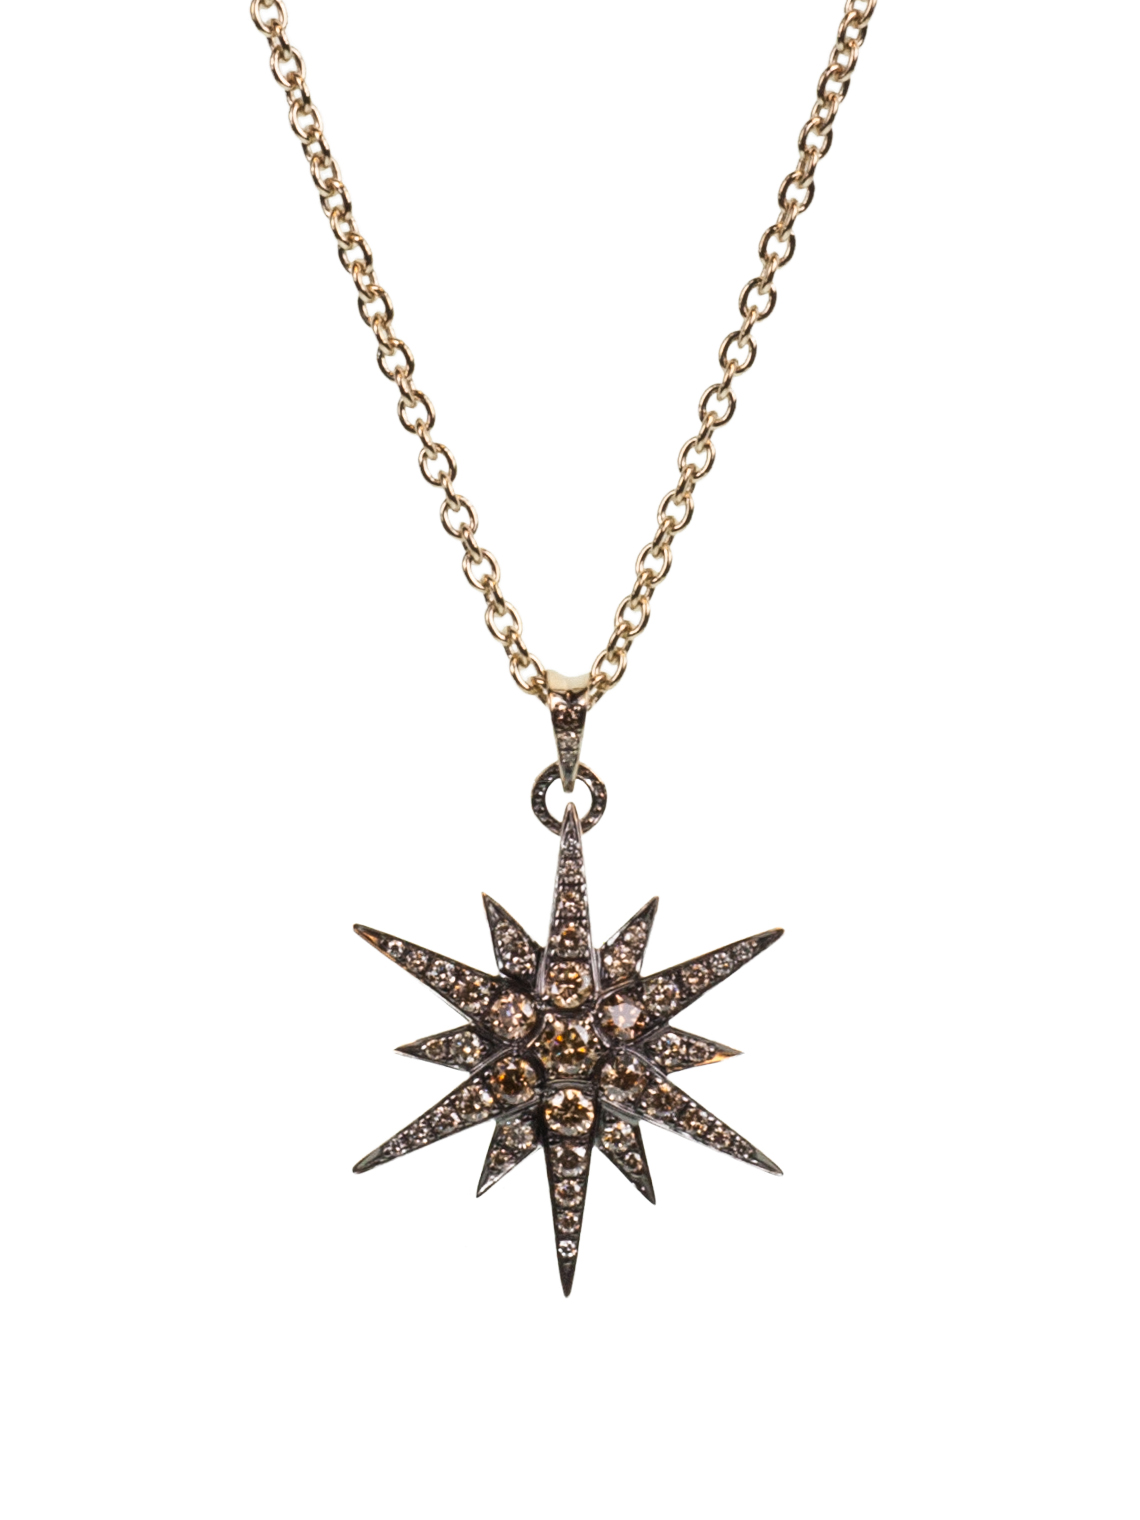 18K Noble Gold Champagne and Cognac Diamond Star Pendant Necklace